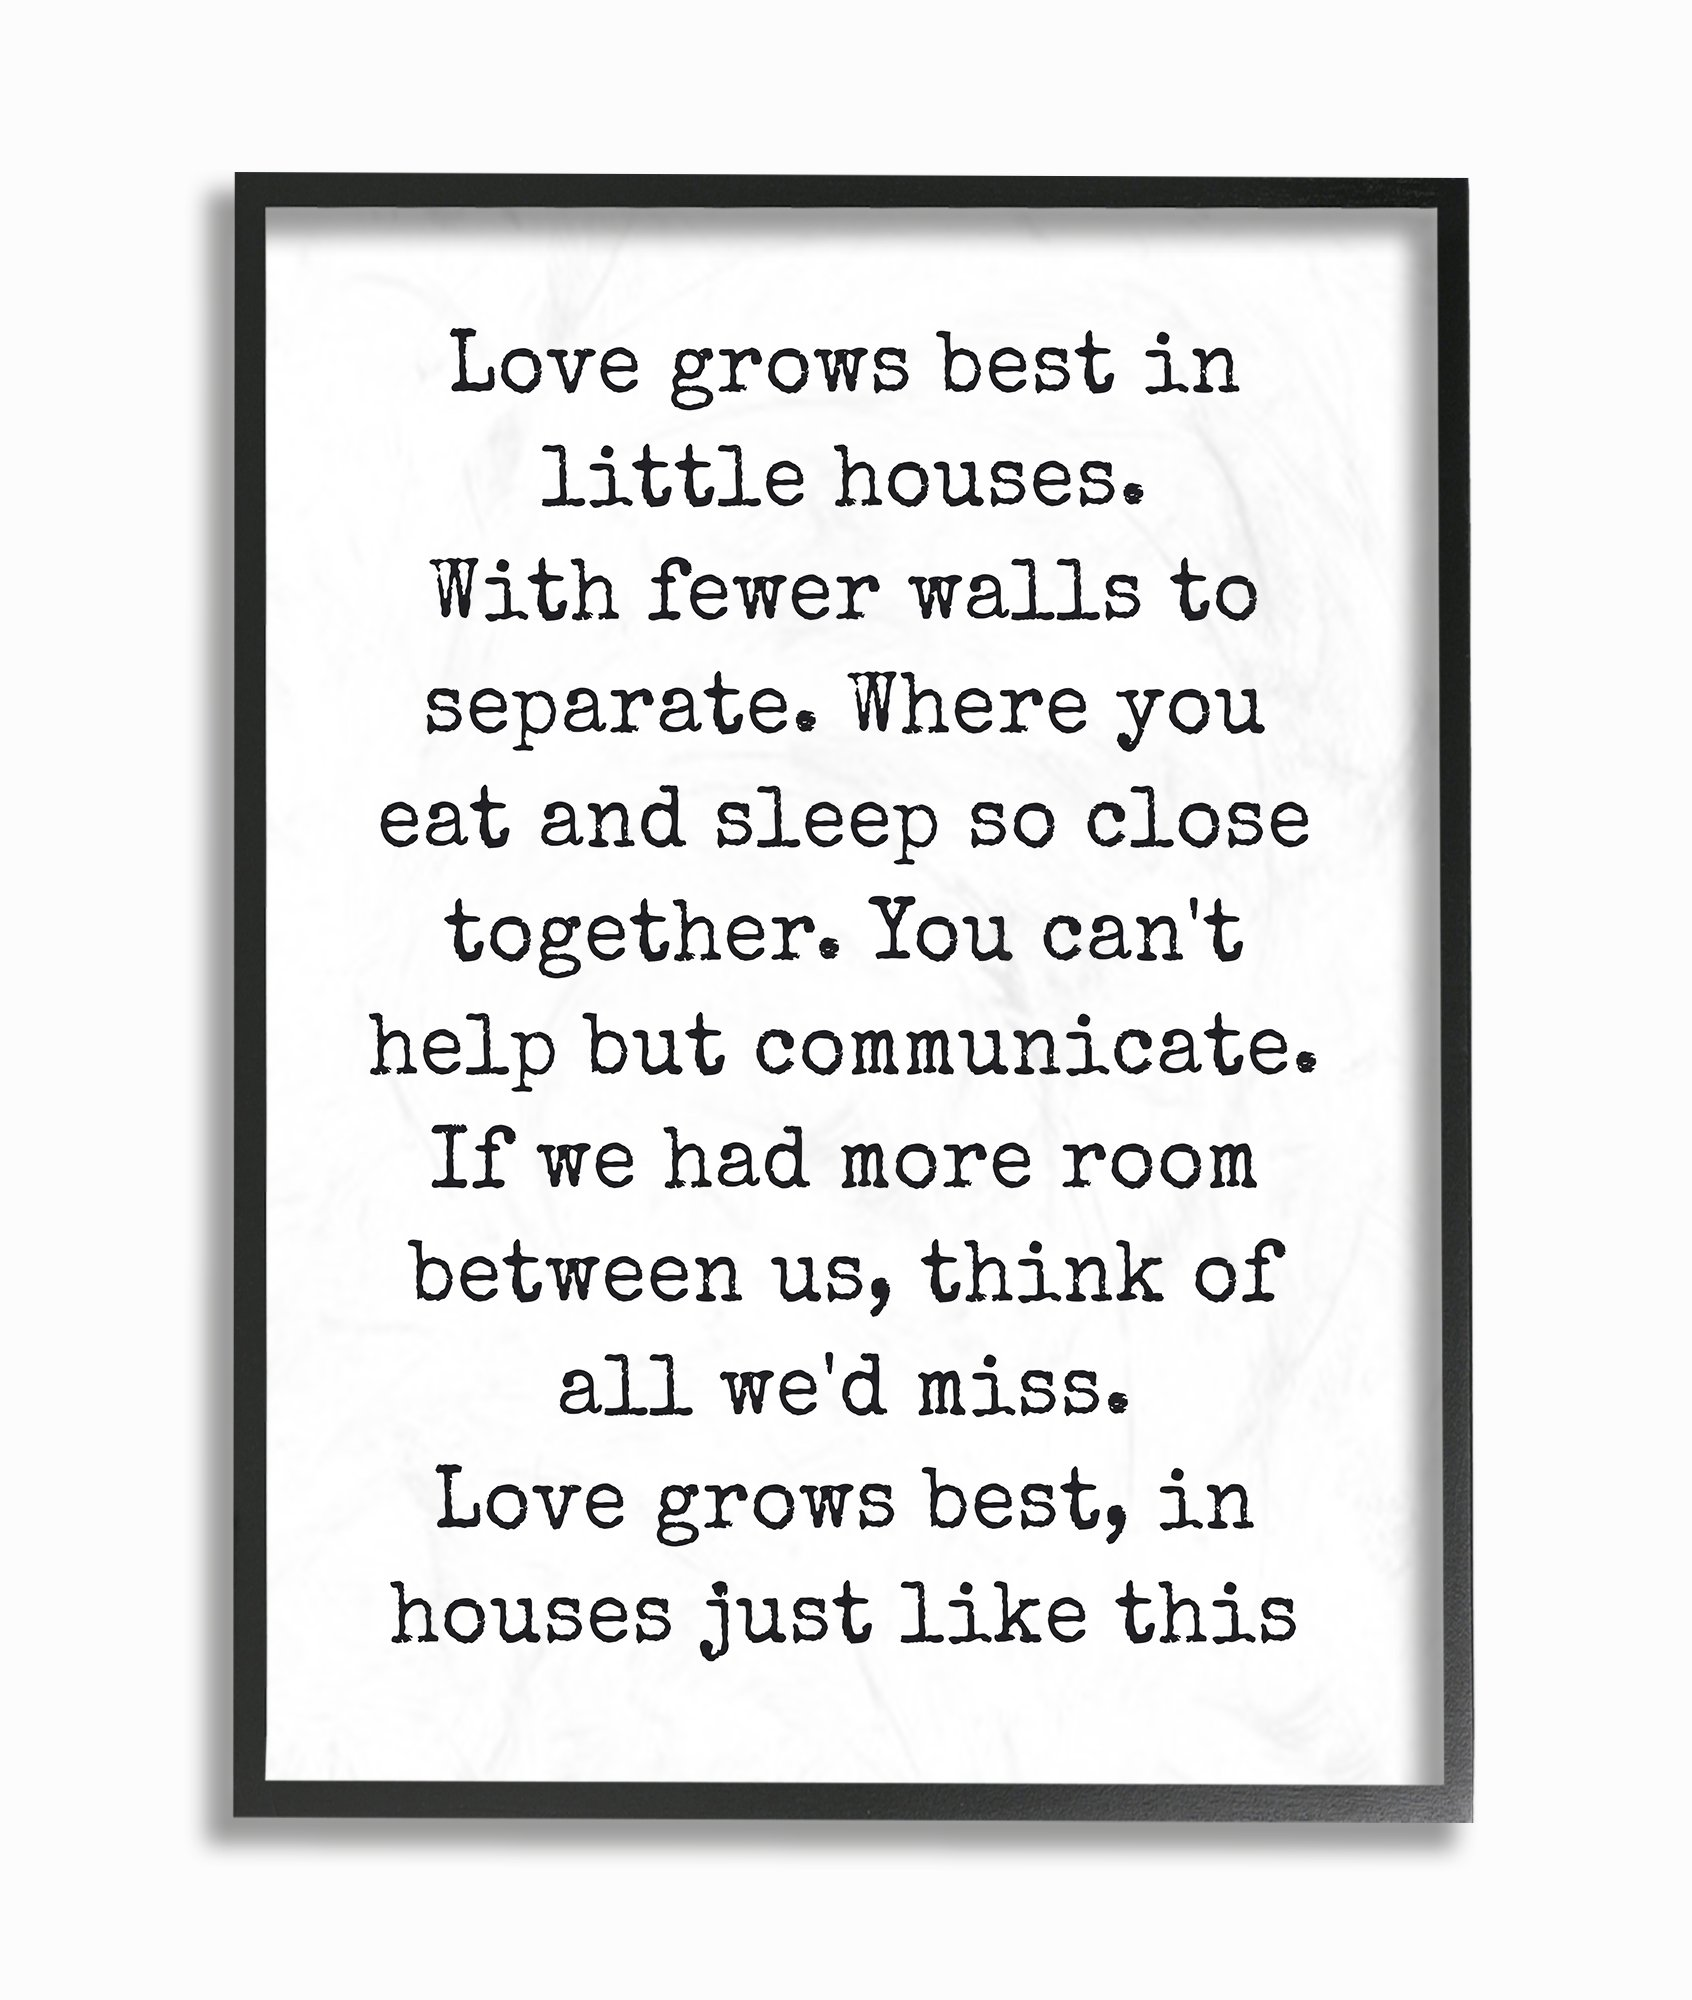 The Stupell Home Decor Collection Love Grows Best in Little Houses Framed Giclee Texturized Art